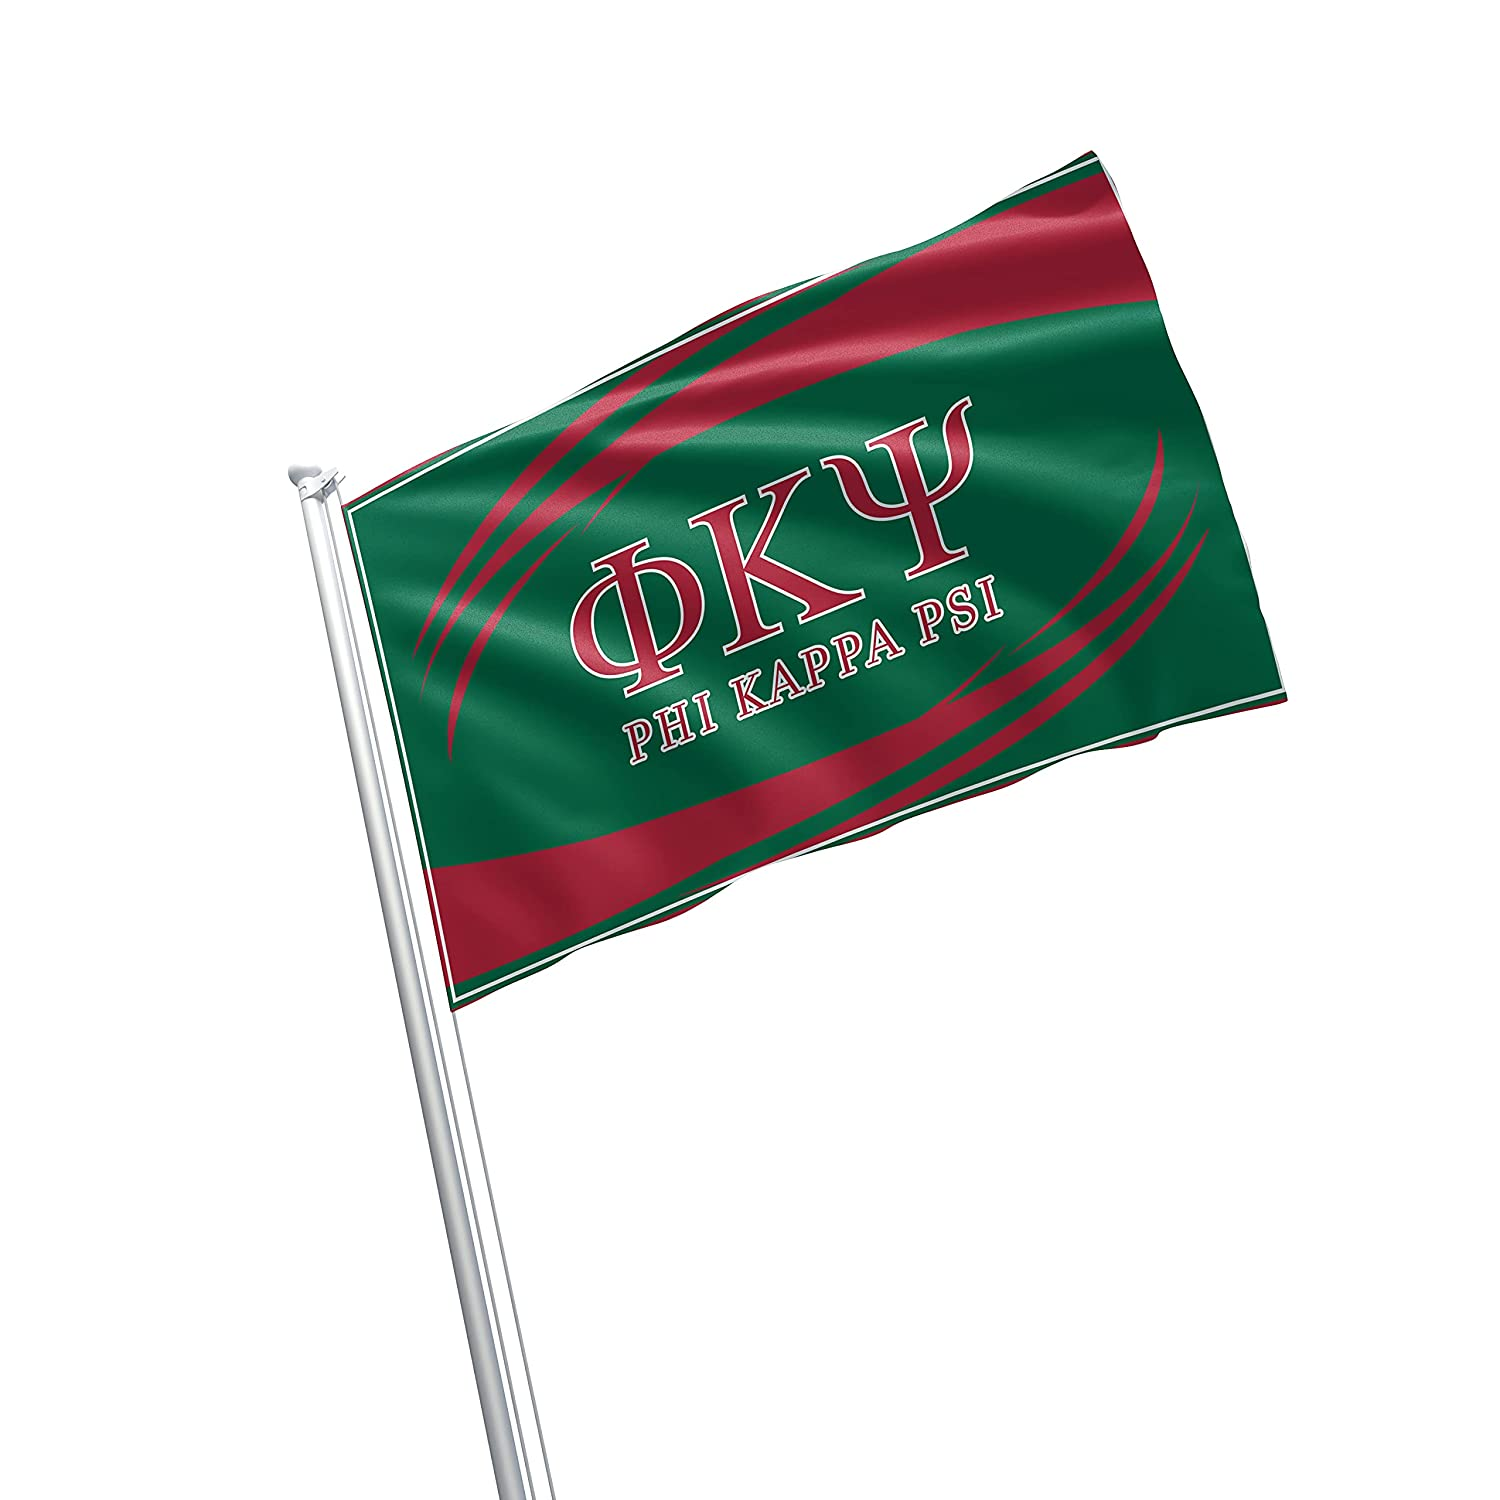 Phi Kappa Psi Fraternity Greek Life Licensed Flag 3x5 Feet Flag Banner Wall Decor Outdoor Indoor Decoration Brass Grommets Double Stitch